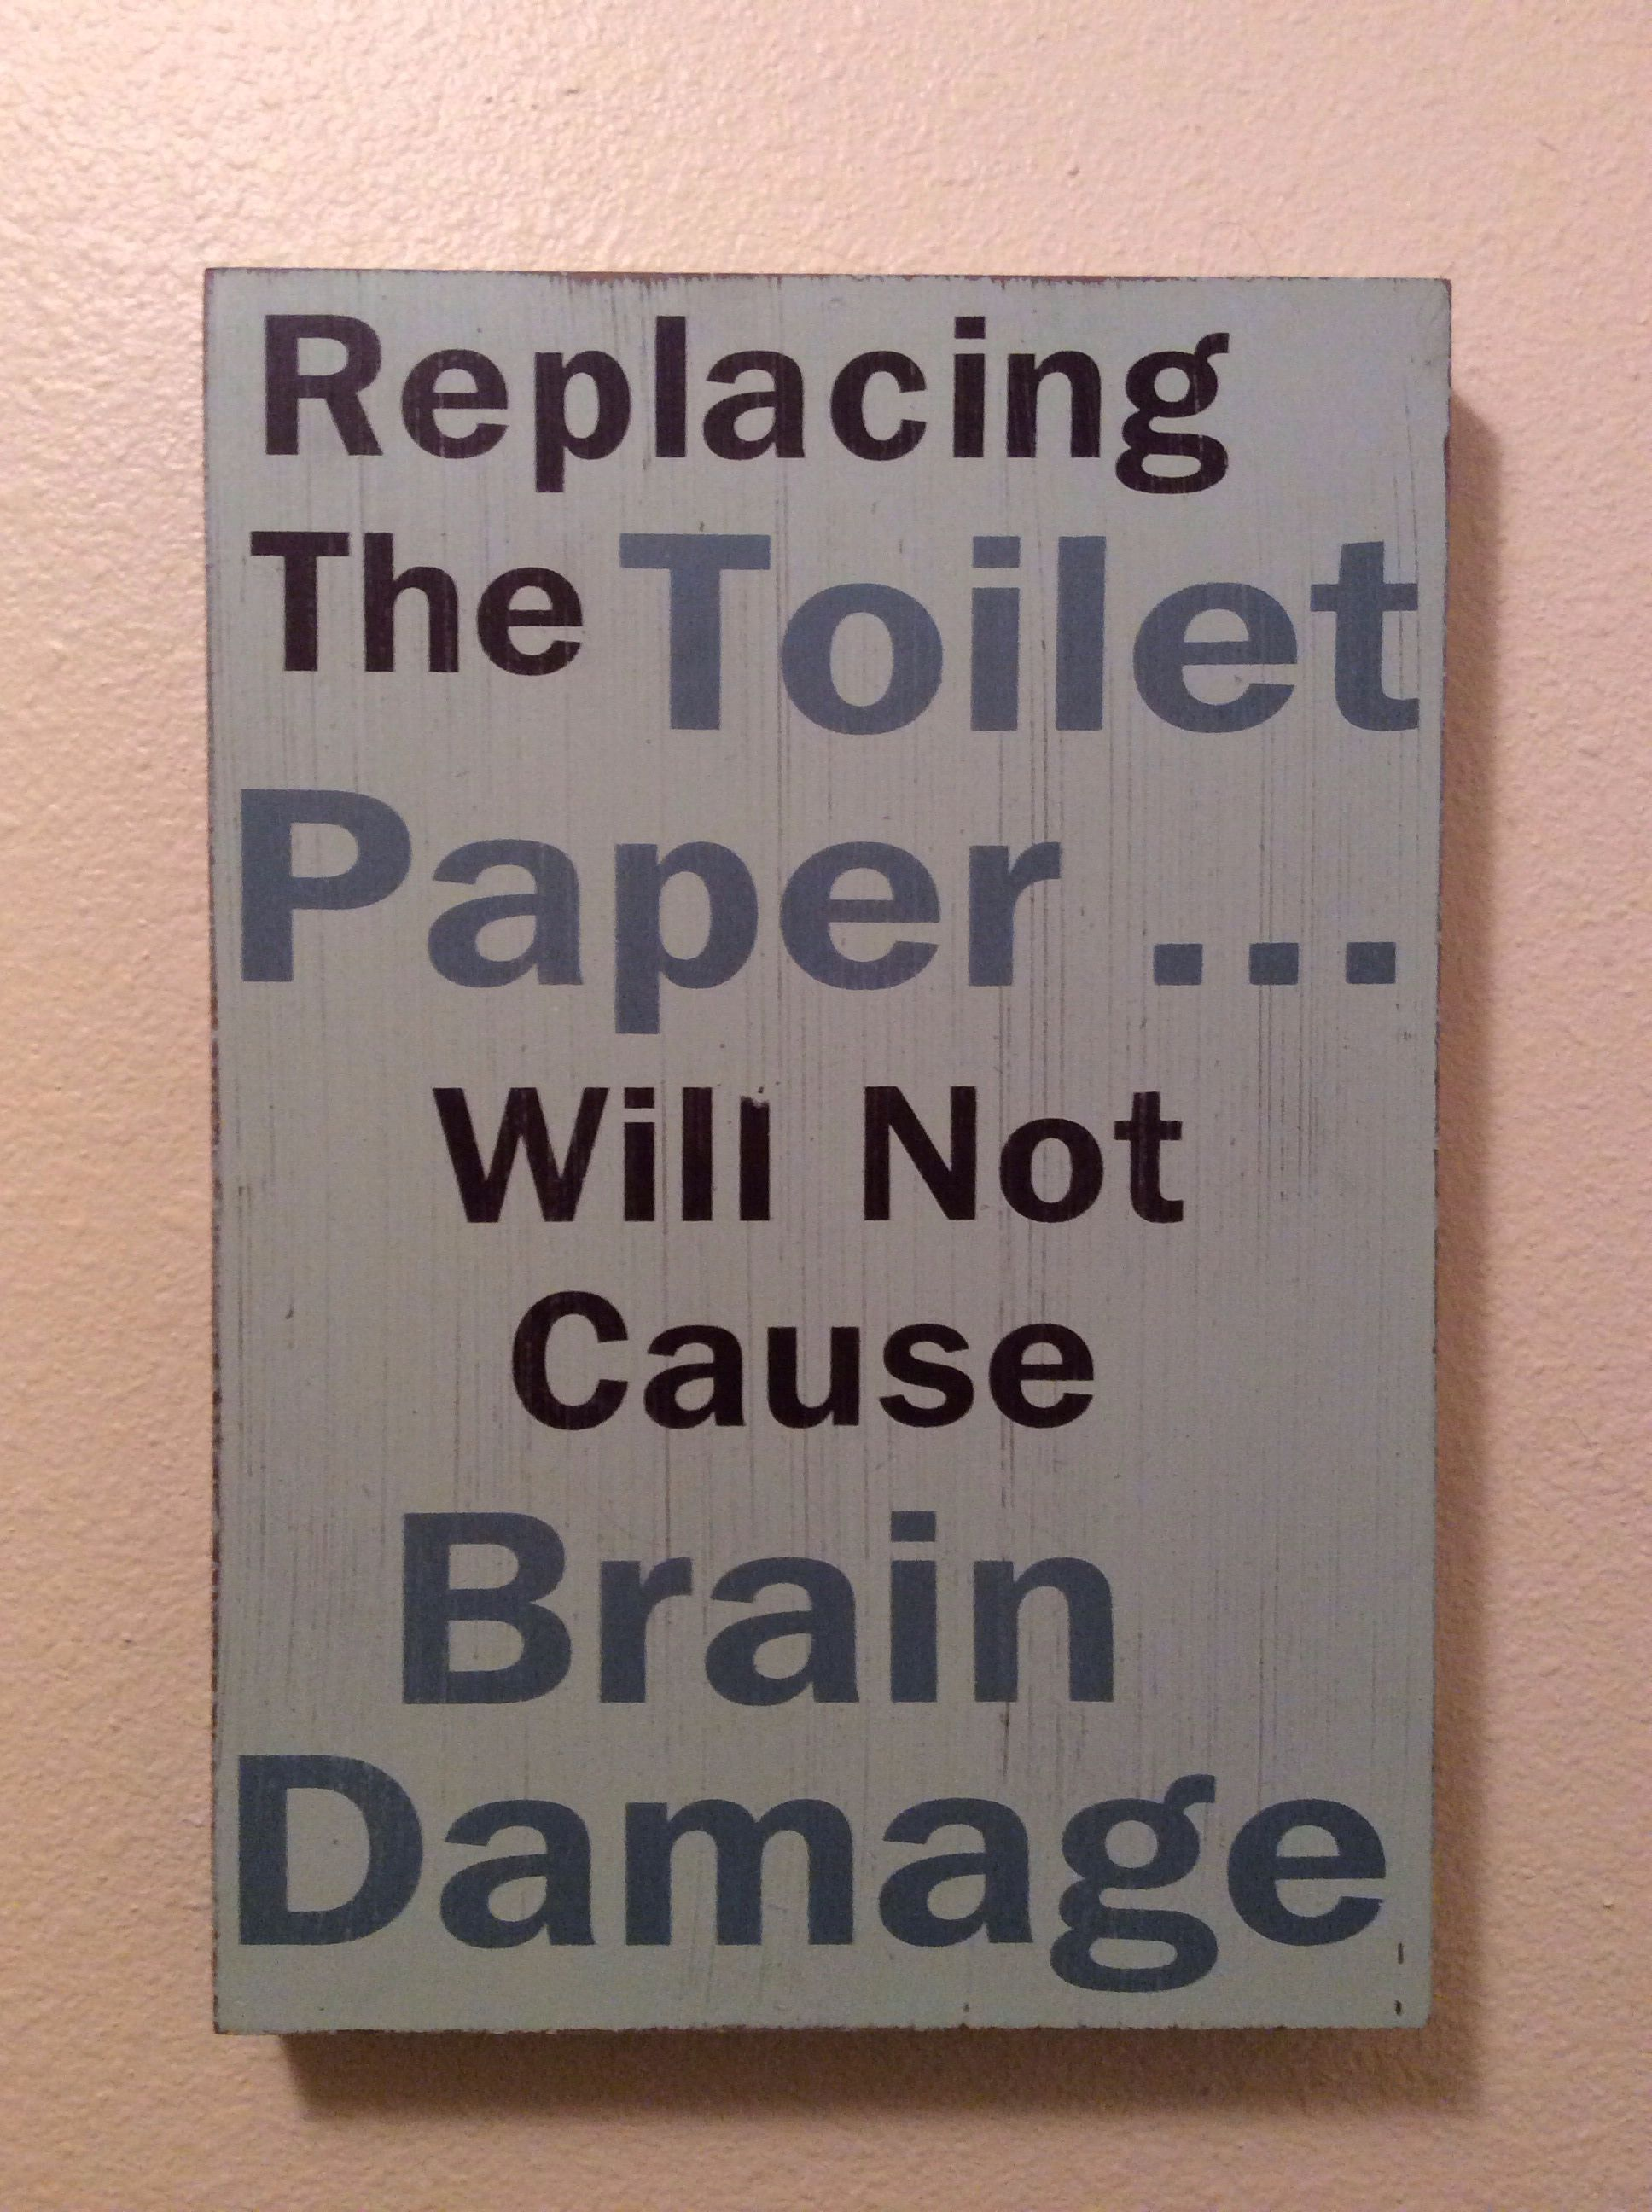 Funny Toilet Paper Replacing The Toilet Paper Ha Ha Pinterest